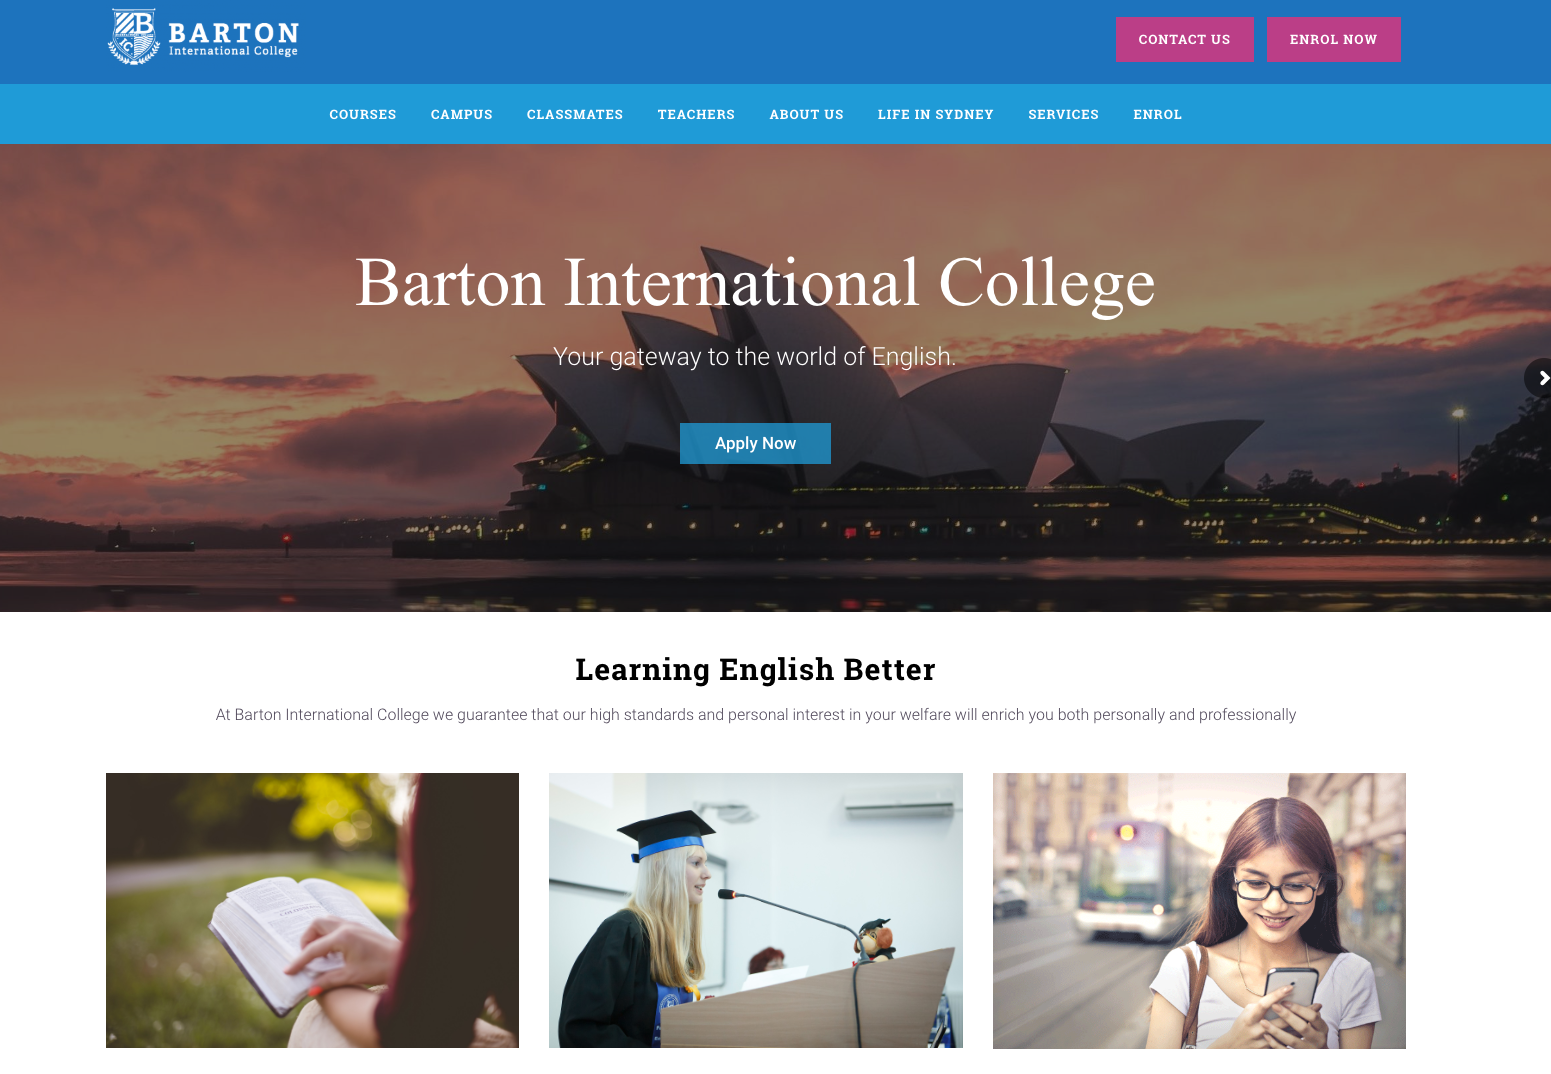 Barton International College